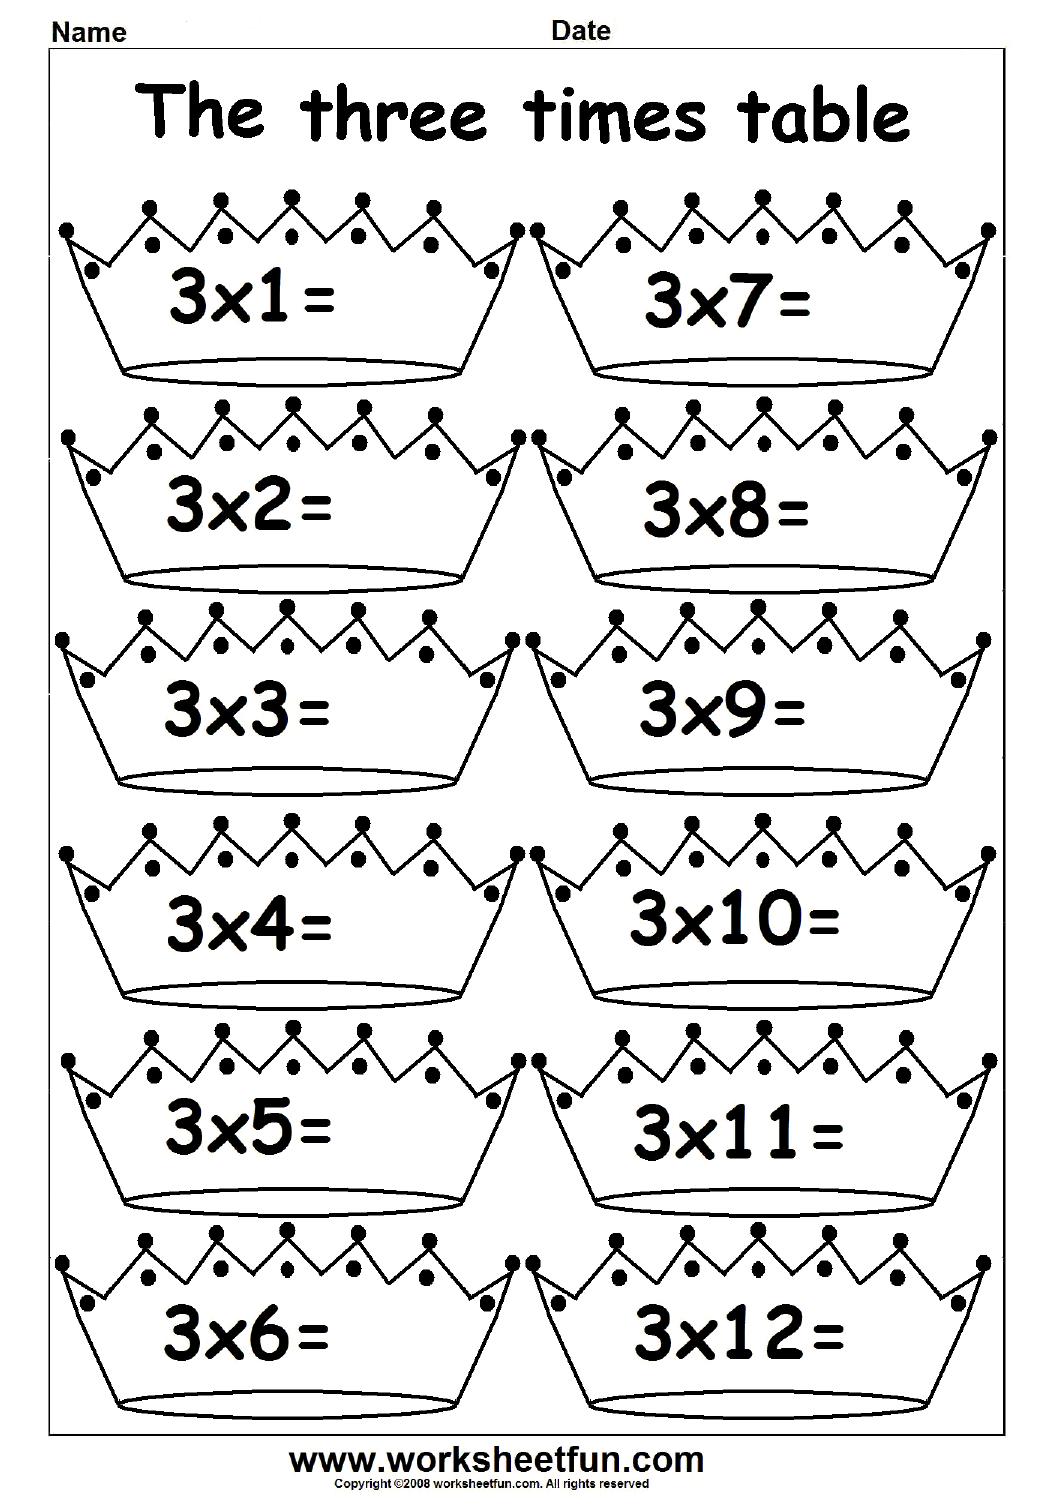 Multiplication Times Tables Worksheets 2 3 4 and 5 Times Tables – Multiplication Worksheets by 3